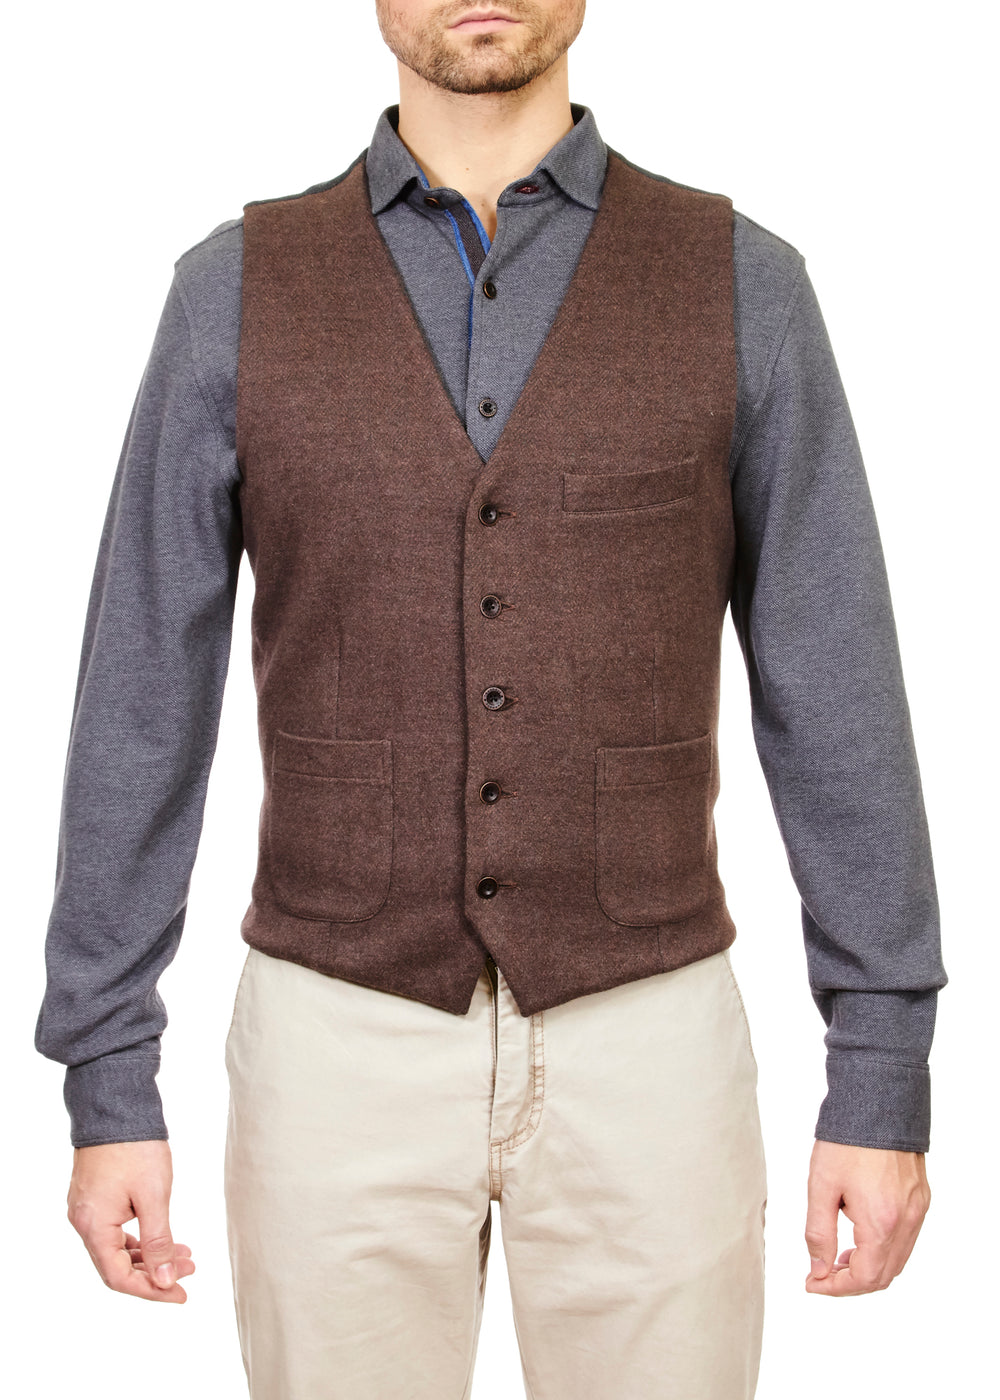 Thaddeus WEST Cotton Herringbone Jacquard Button Vest